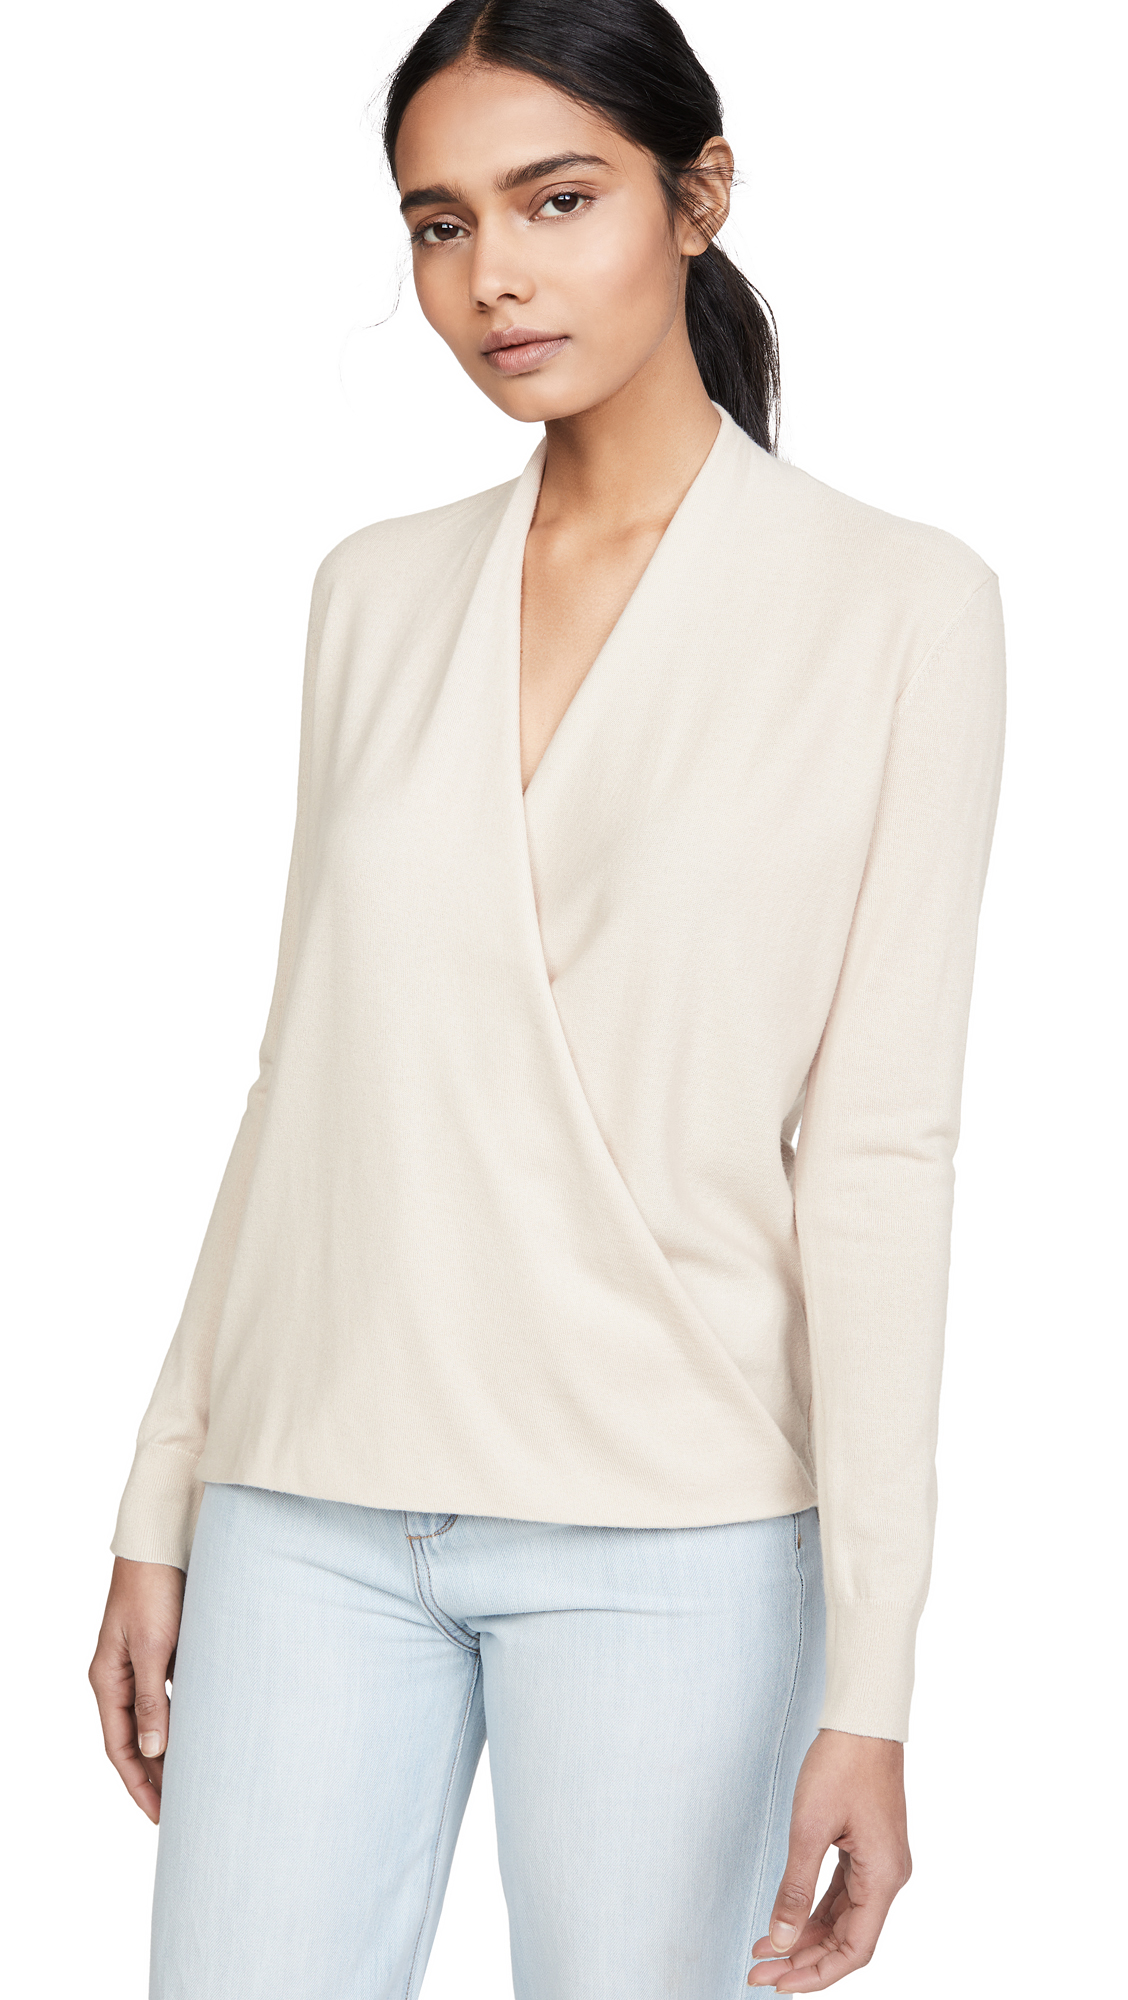 TSE Cashmere Cashmere Drape Top - 50% Off Sale